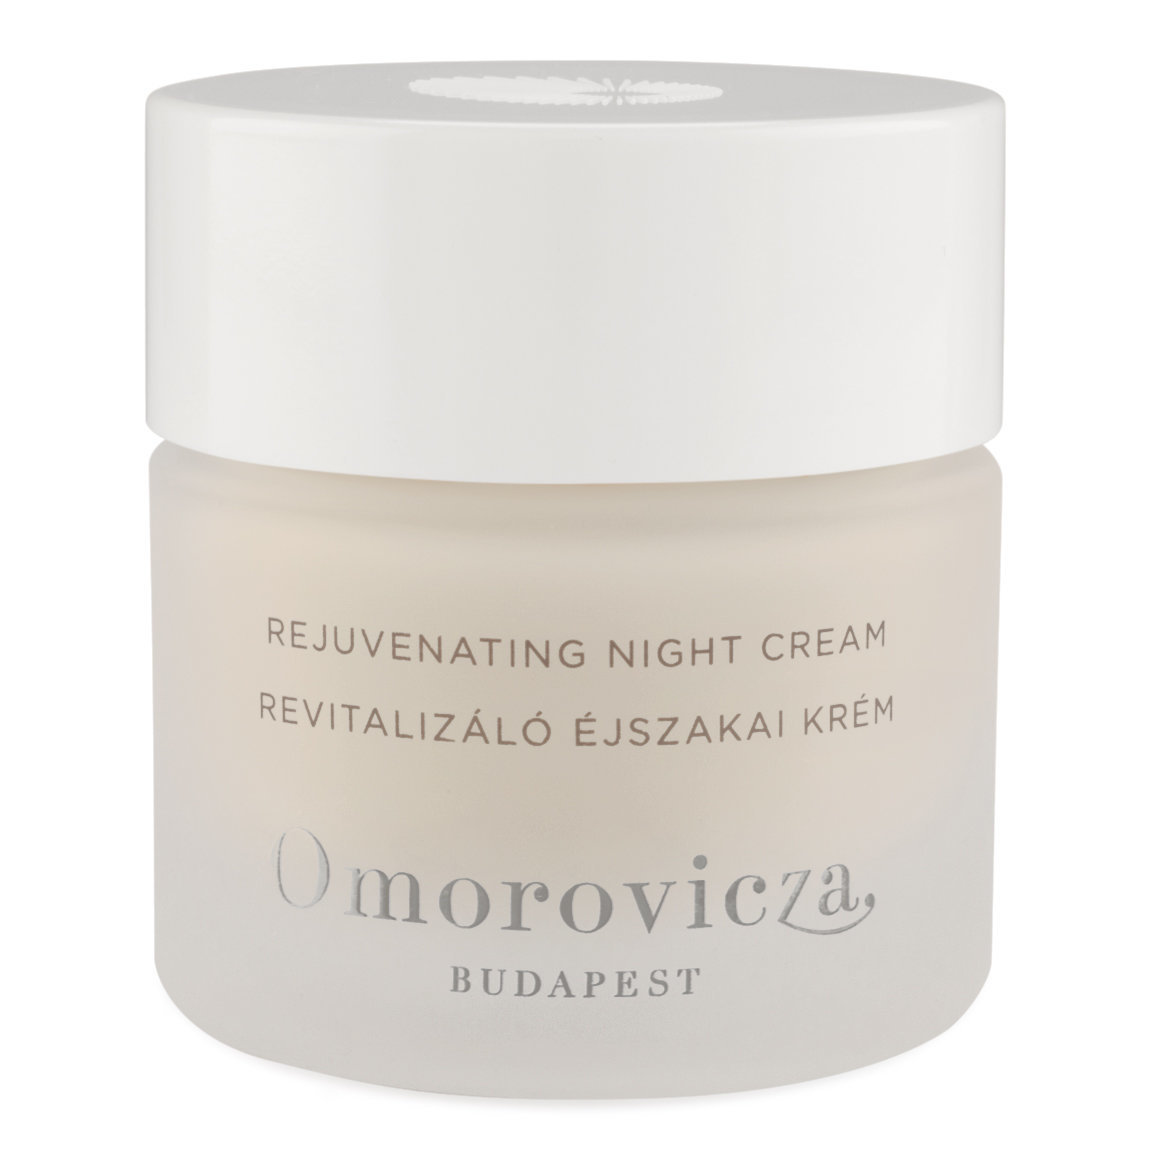 Omorovicza Rejuvenating Night Cream product smear.